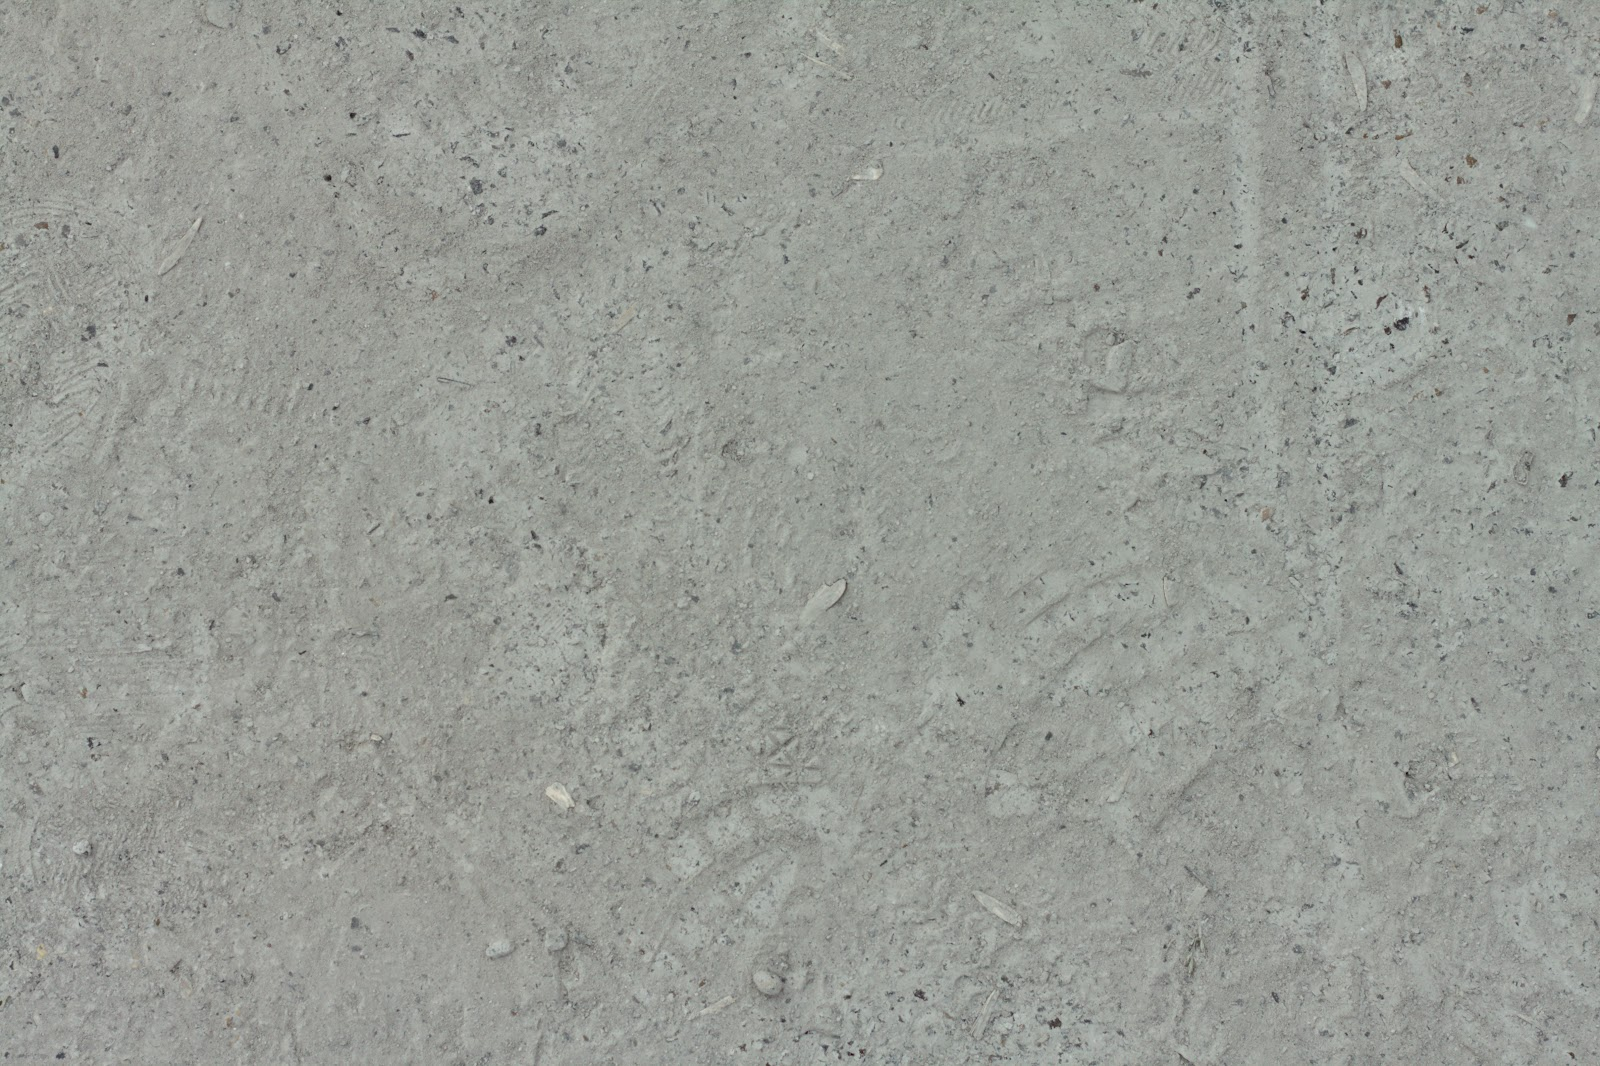 concrete floor texture, HIGH RESOLUTION TEXTURES: Concrete